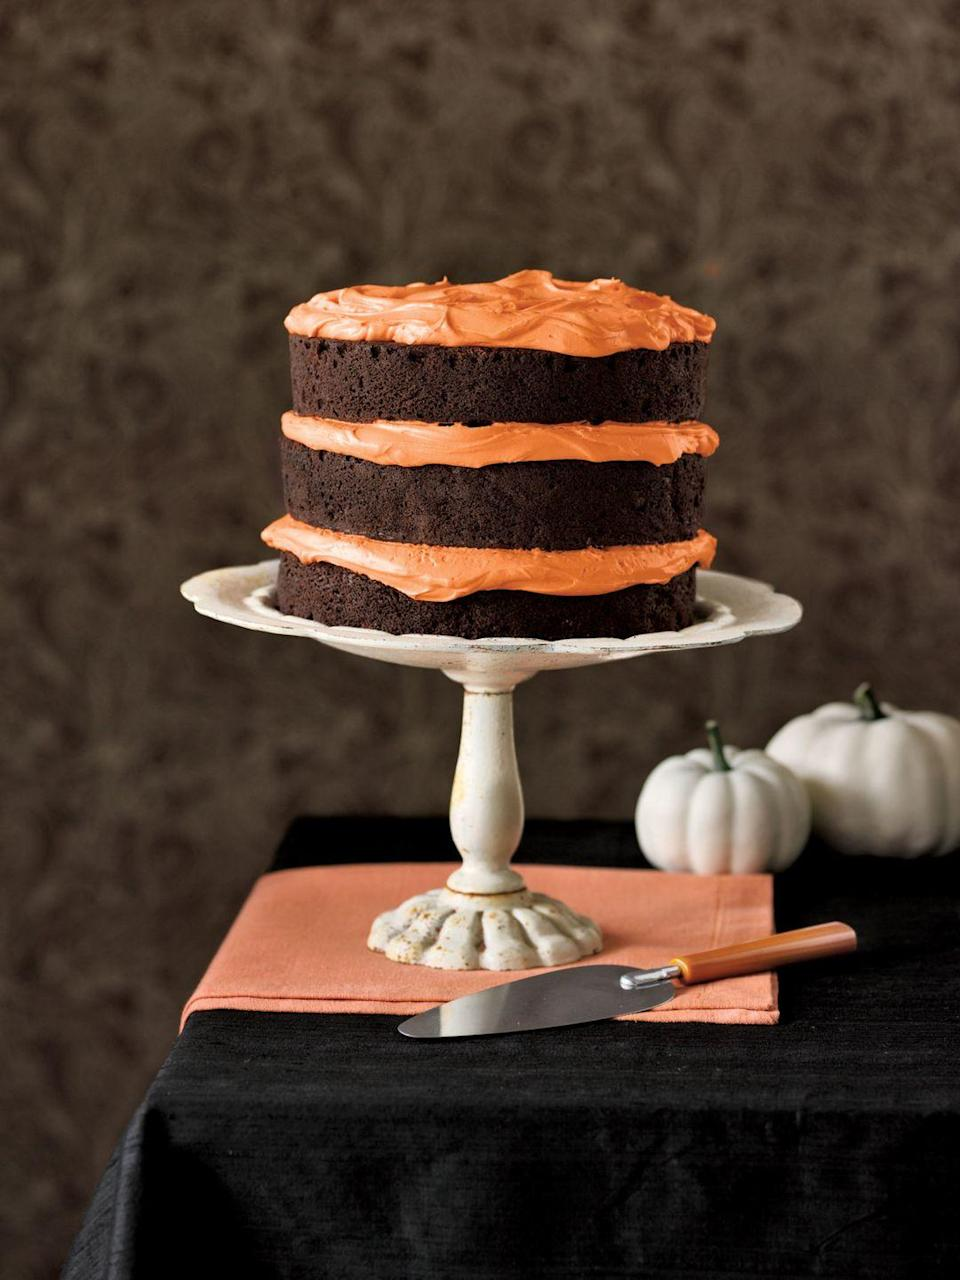 """<p>For those of you who can't decide between a chocolate and pumpkin spice cake, meet the hybrid Halloween cake of your dreams.</p><p><em><a href=""""https://www.goodhousekeeping.com/food-recipes/a5721/chocolate-pumpkin-cake-cupcakes-3922/"""" rel=""""nofollow noopener"""" target=""""_blank"""" data-ylk=""""slk:Get the recipe for Chocolate Pumpkin Cake »"""" class=""""link rapid-noclick-resp"""">Get the recipe for Chocolate Pumpkin Cake »</a></em></p><p><strong>RELATED: </strong><a href=""""https://www.goodhousekeeping.com/food-recipes/dessert/g4547/pumpkin-cake-recipes/"""" rel=""""nofollow noopener"""" target=""""_blank"""" data-ylk=""""slk:21 Pumpkin Cakes That Celebrate Fall in the Best Way"""" class=""""link rapid-noclick-resp"""">21 Pumpkin Cakes That Celebrate Fall in the Best Way</a></p>"""